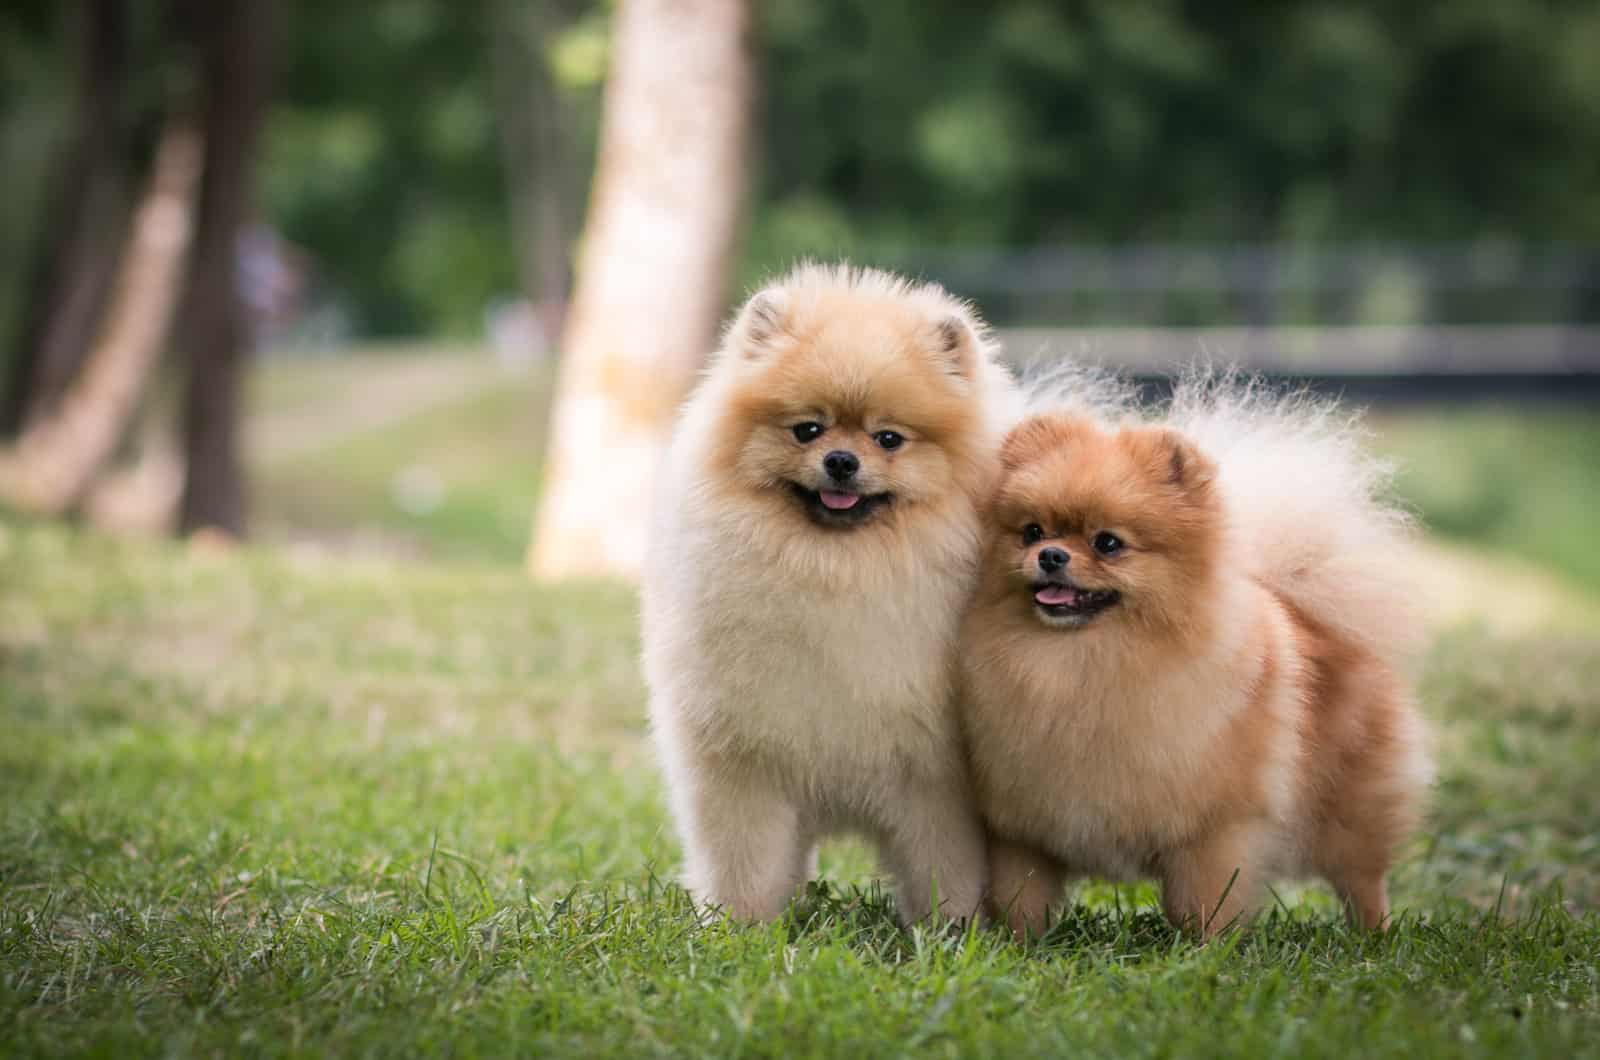 two pomeranians standing in grass